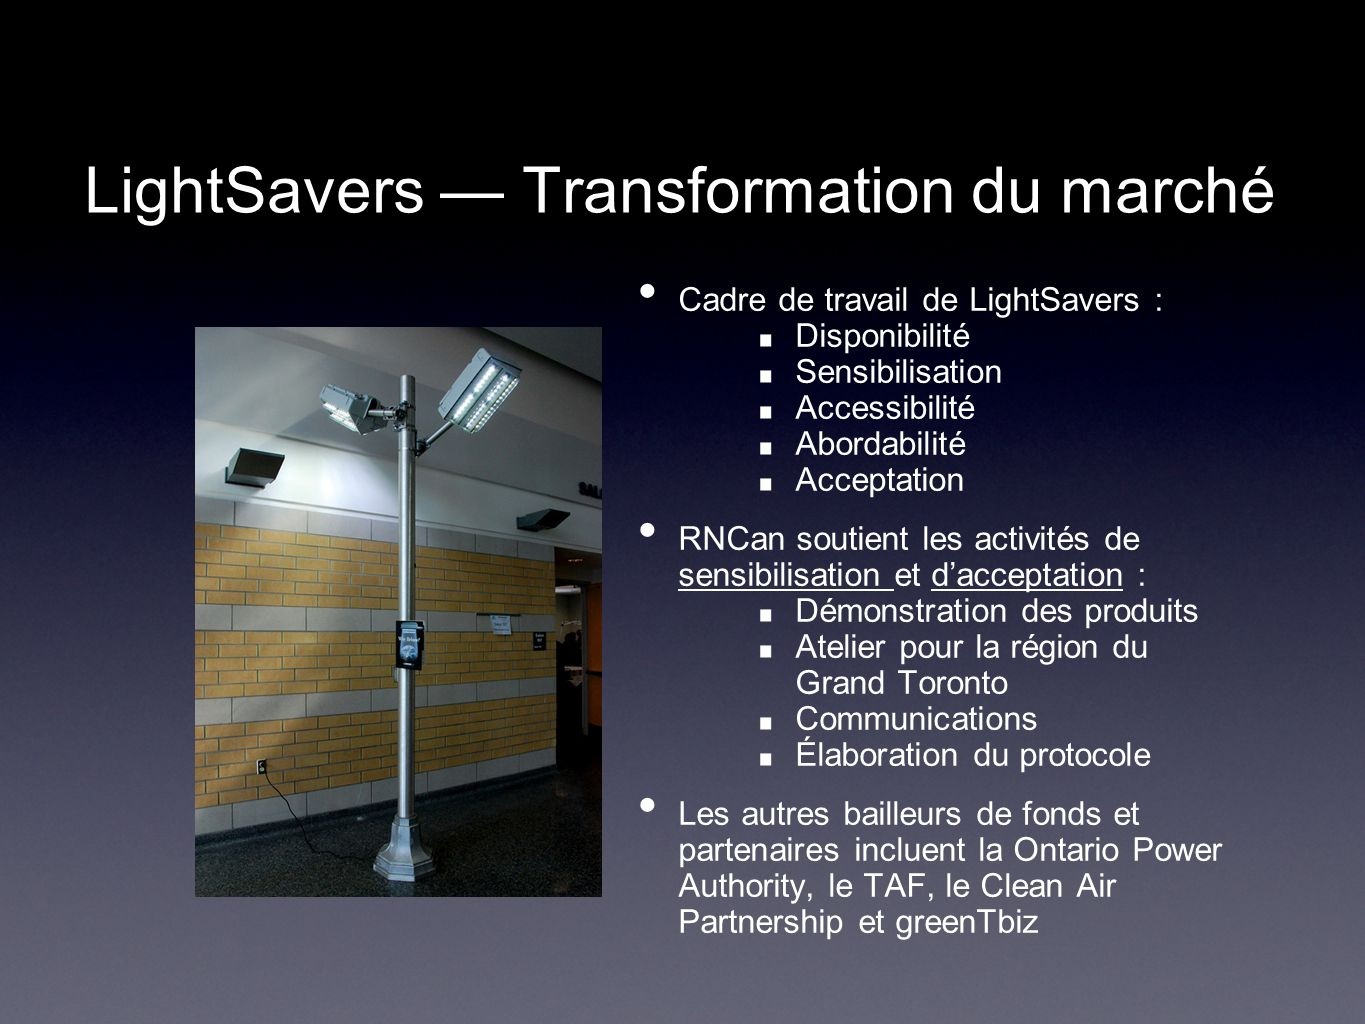 LightSavers — Transformation du marché